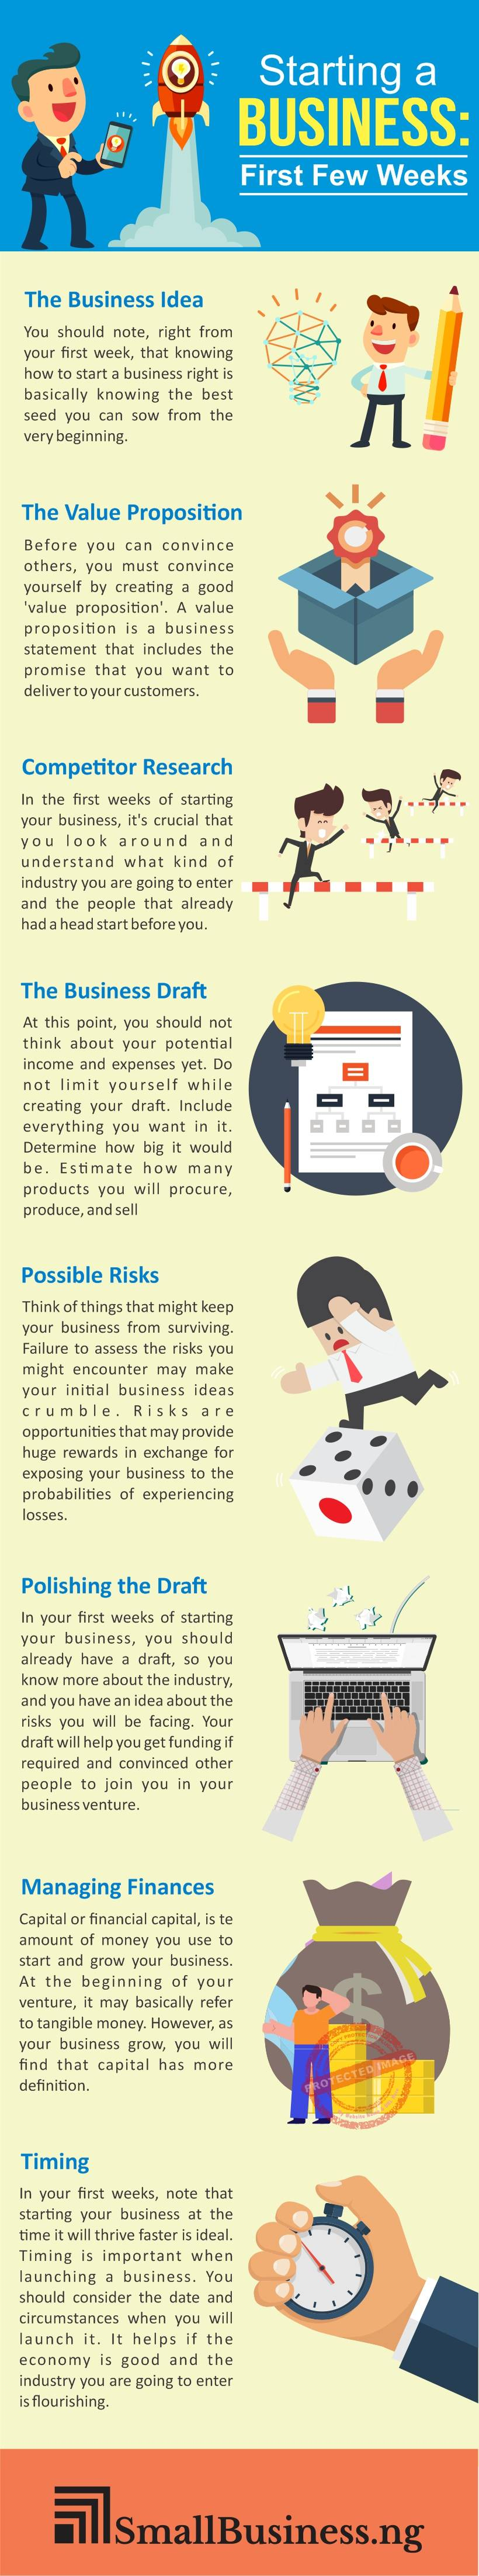 Starting a Business The First Few Weeks Infographic